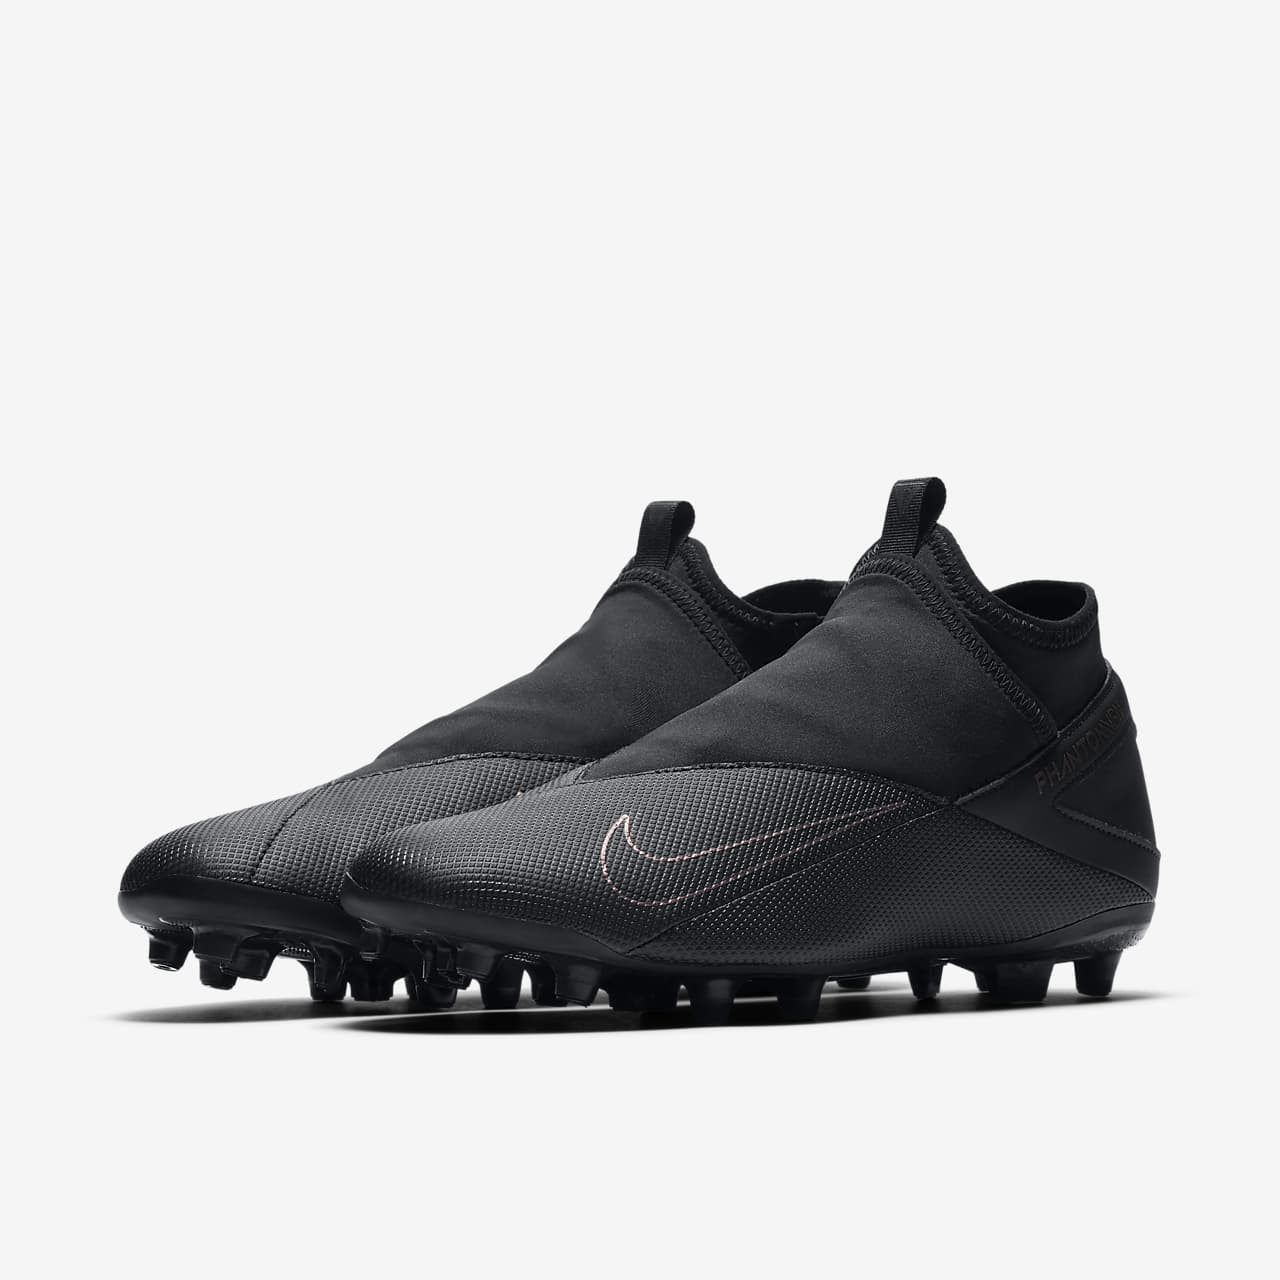 Campo de minas Valiente Ciudad Menda  Nike Phantom Vision 2 Club Dynamic Fit MG Multi-Ground Soccer Cleat. Nike .com